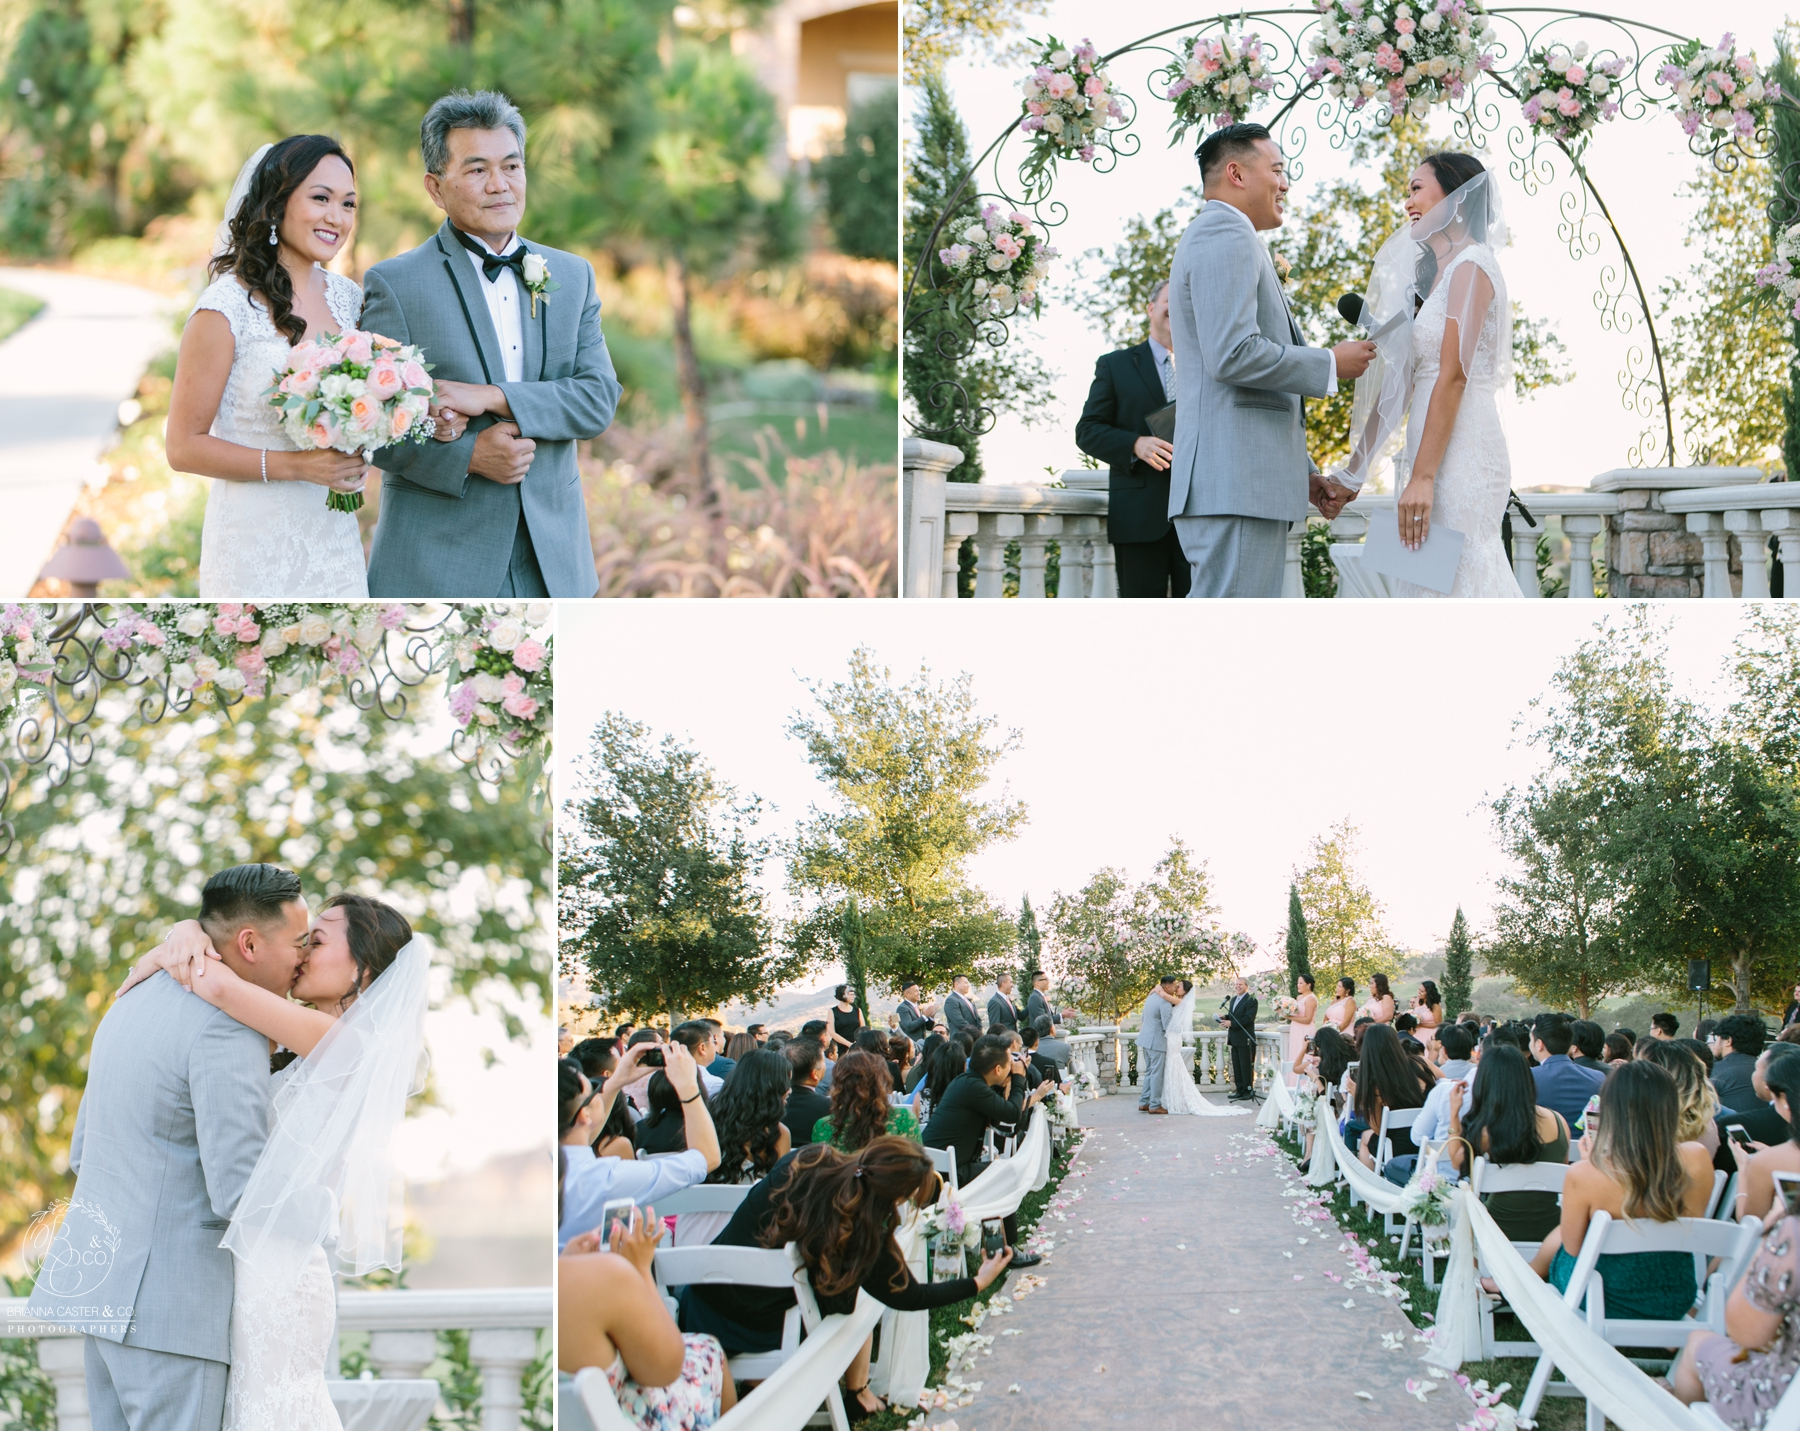 Orange-County-Wedding-Photography-Brianna-Caster-and-Co-Photographers 2